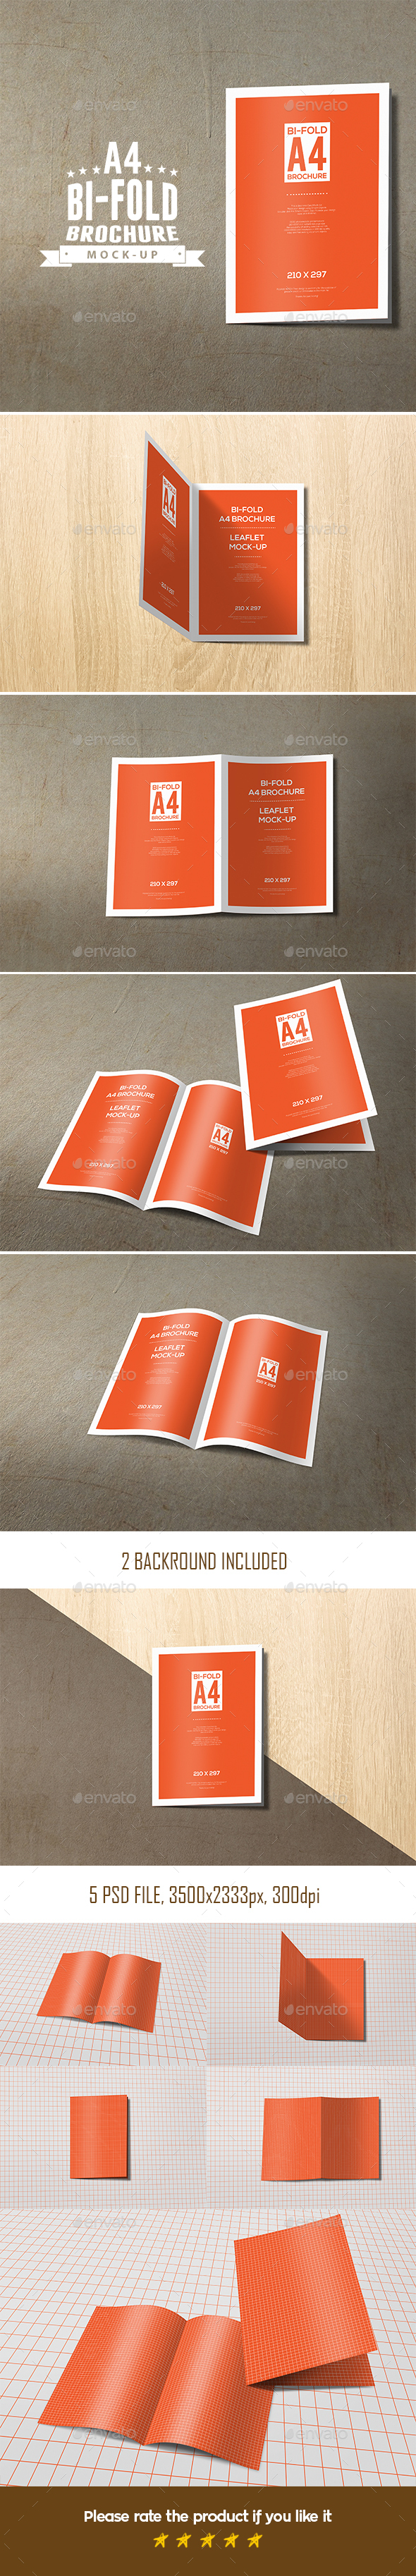 Bi-Fold A4 Brochure Leaflet Mock-Up - Brochures Print